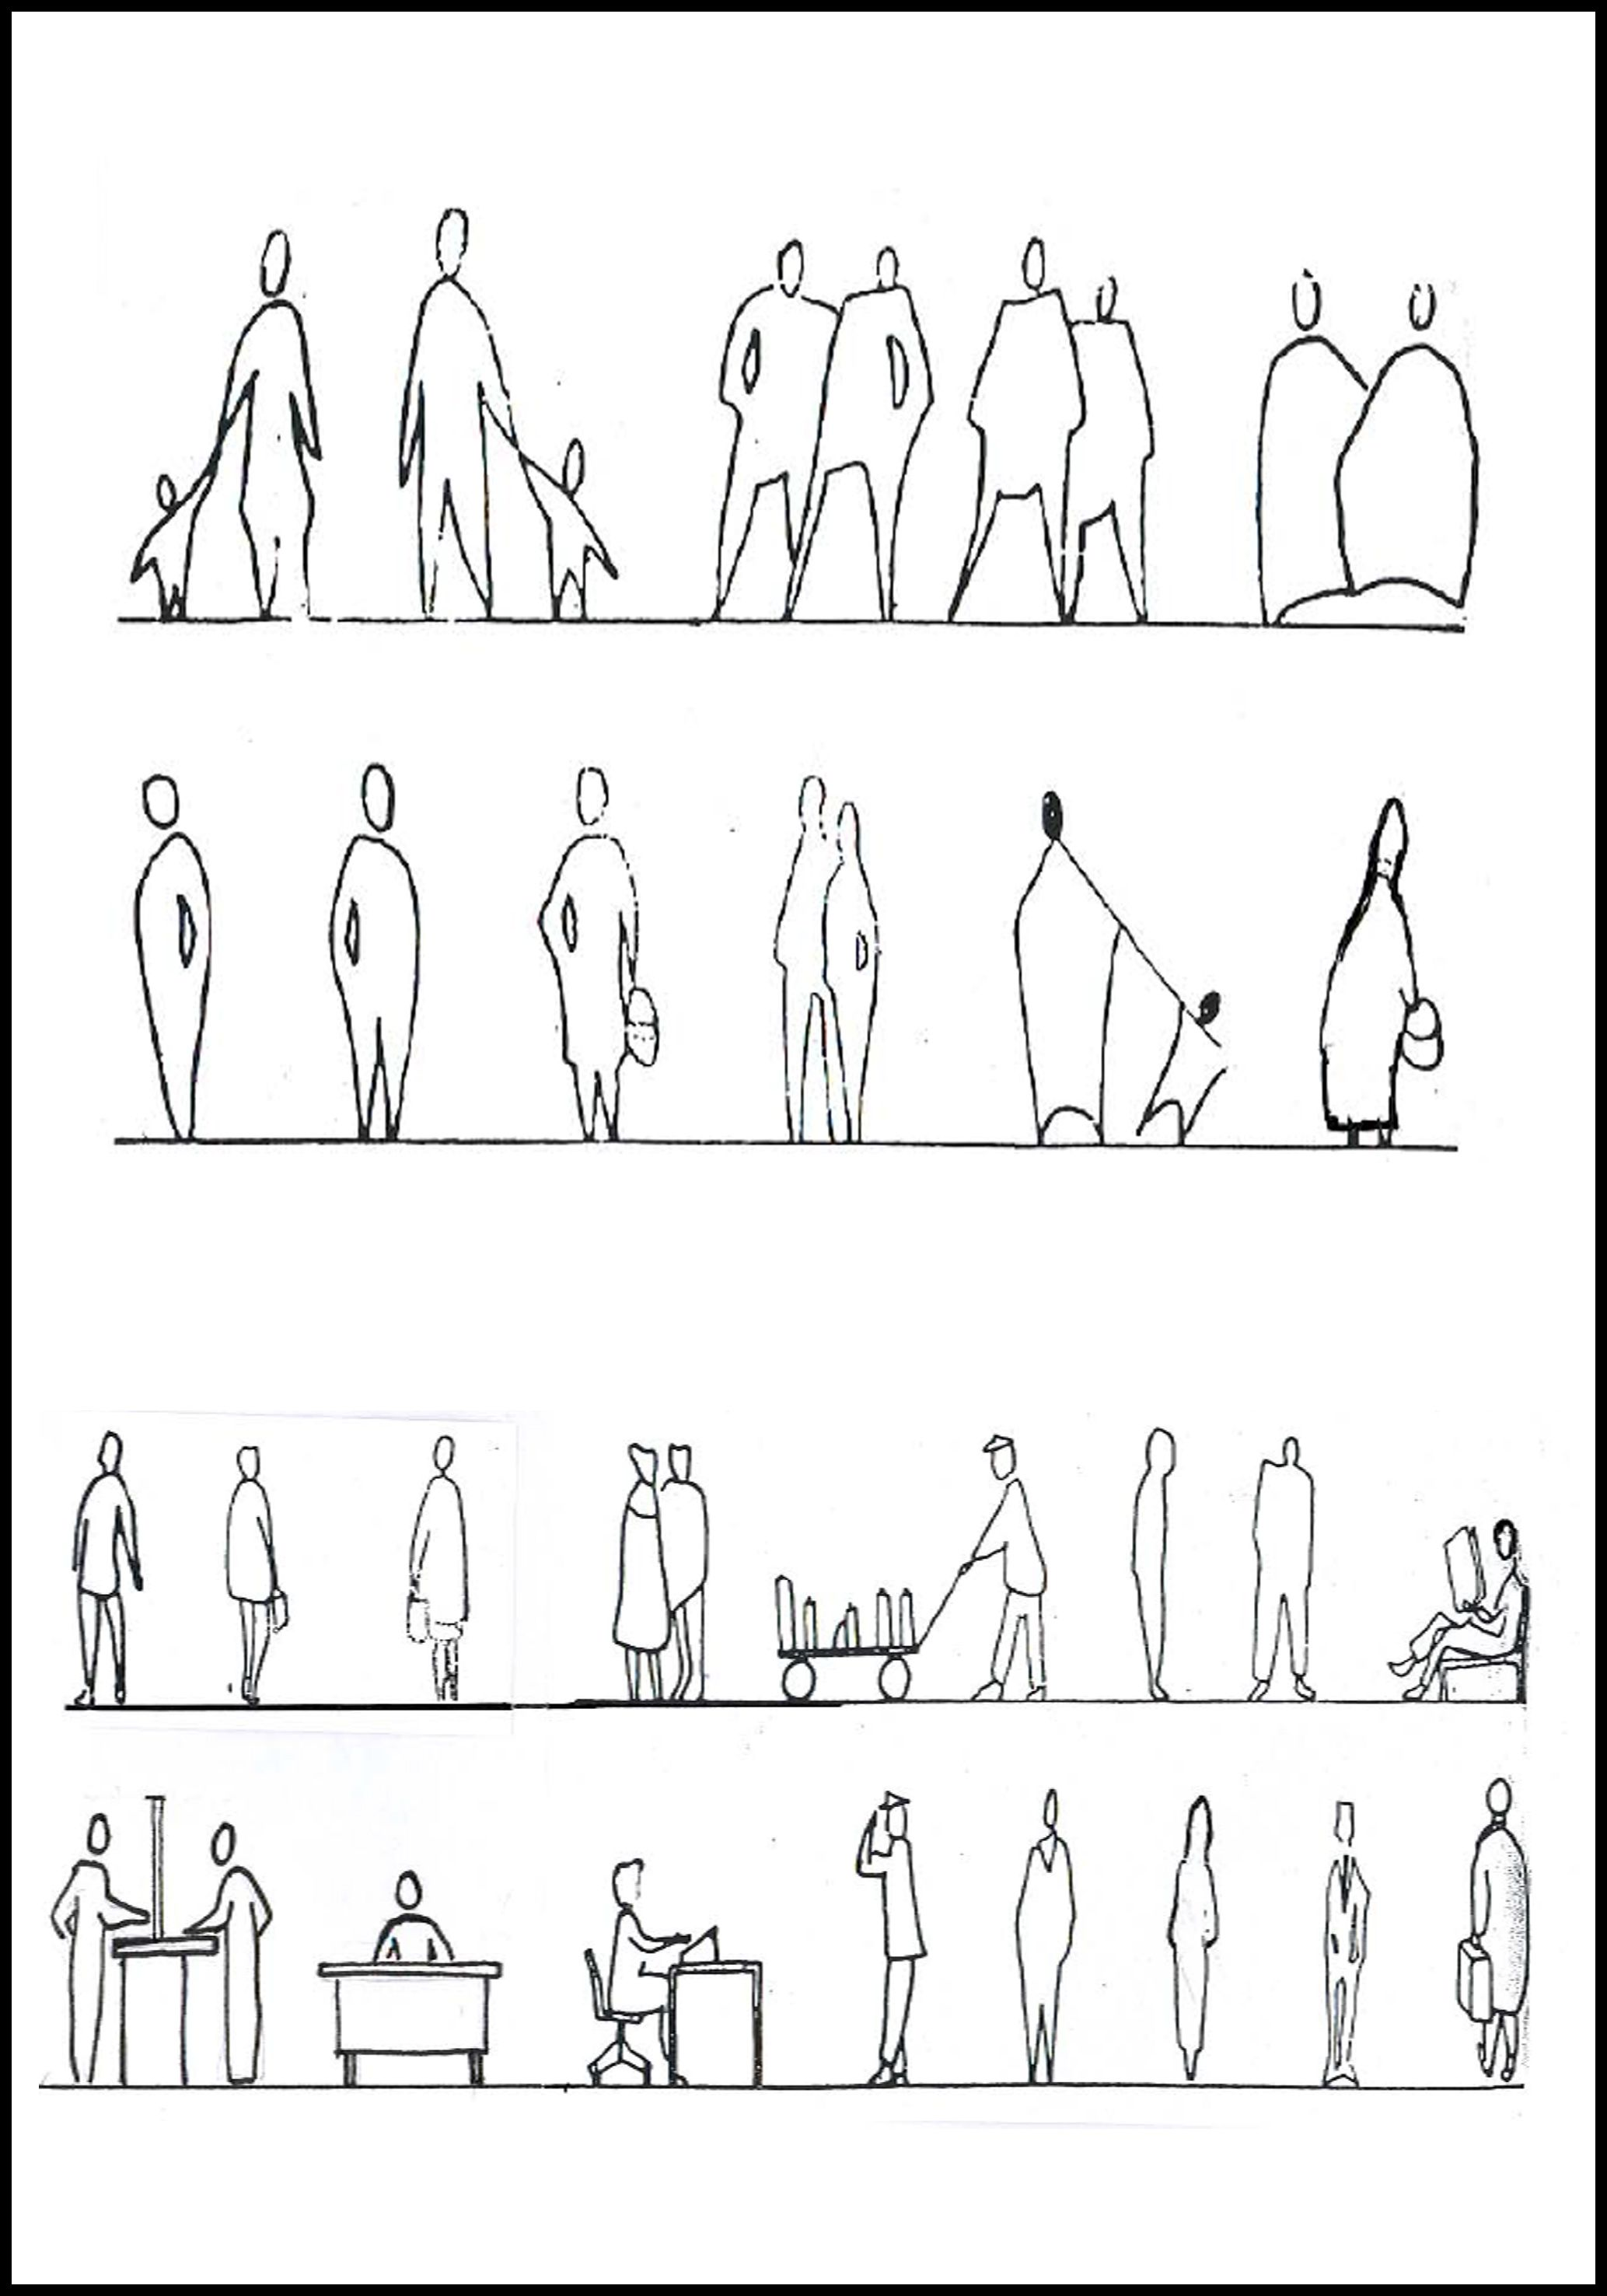 architects technique in drawing people  | architecture graphics